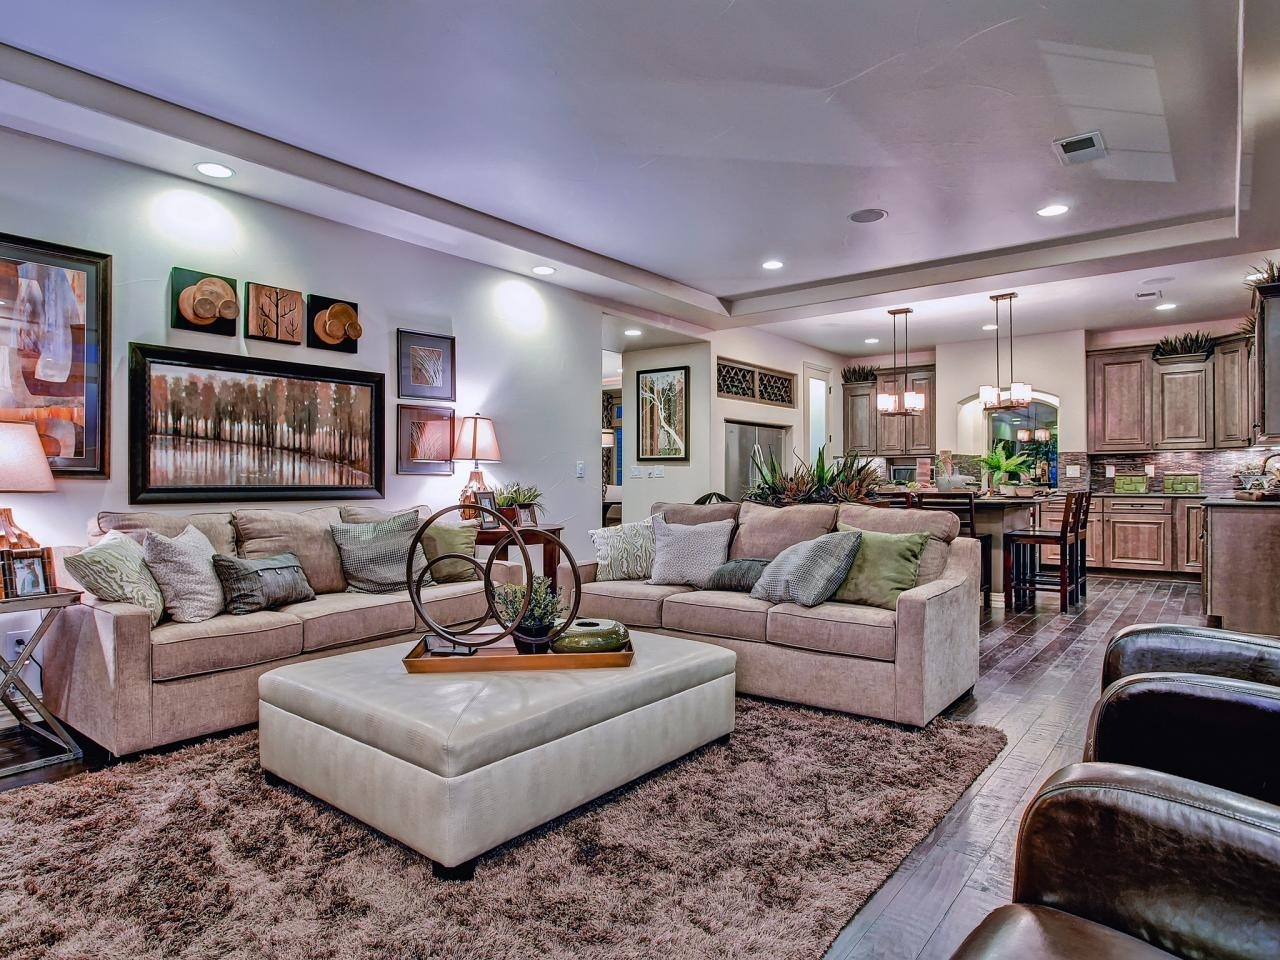 10 Most Recommended Long Living Room Design Ideas %name 2021